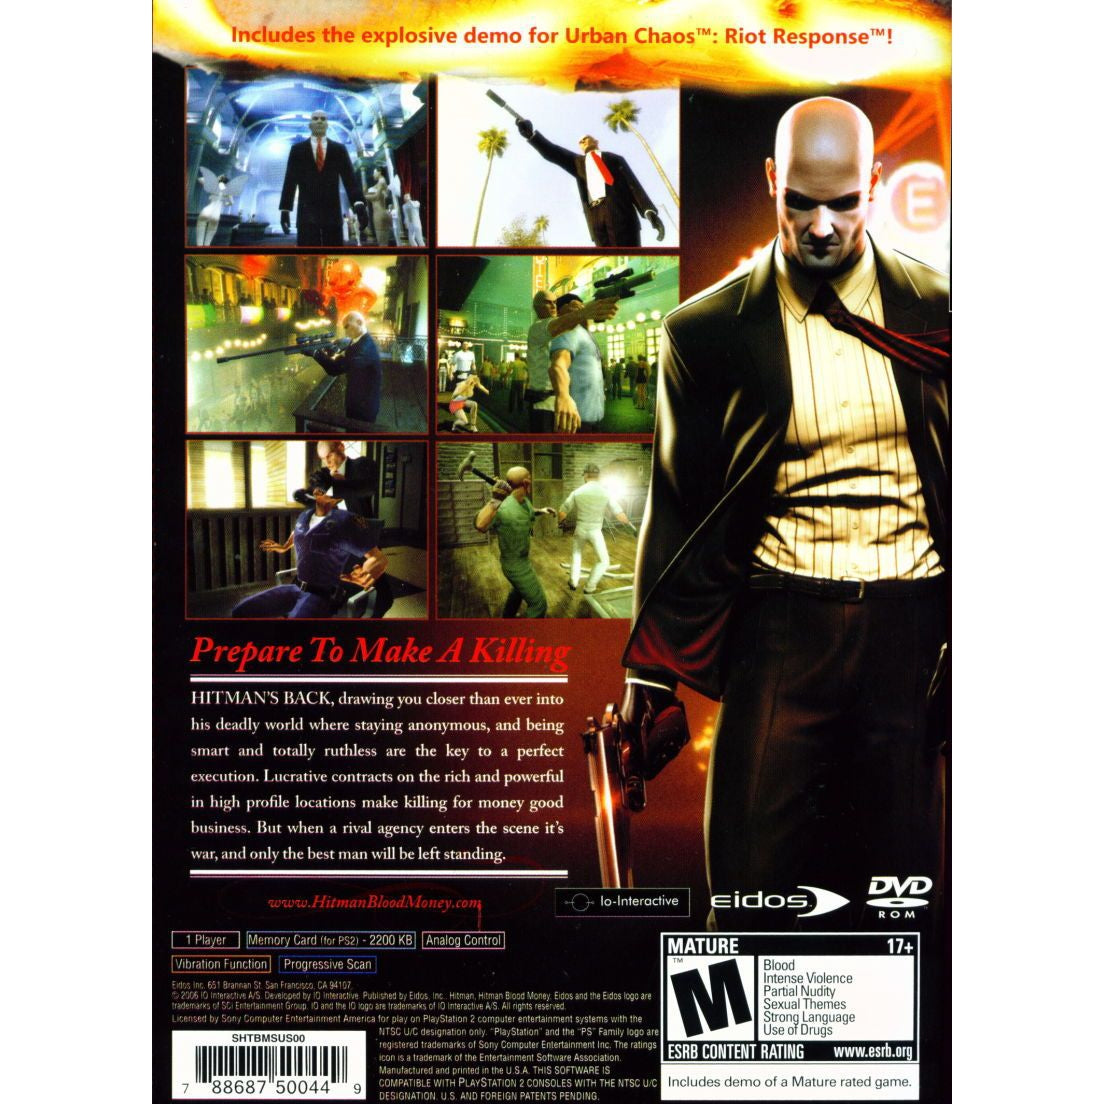 Hitman: Blood Money - PlayStation 2 (PS2) Game Complete - YourGamingShop.com - Buy, Sell, Trade Video Games Online. 120 Day Warranty. Satisfaction Guaranteed.